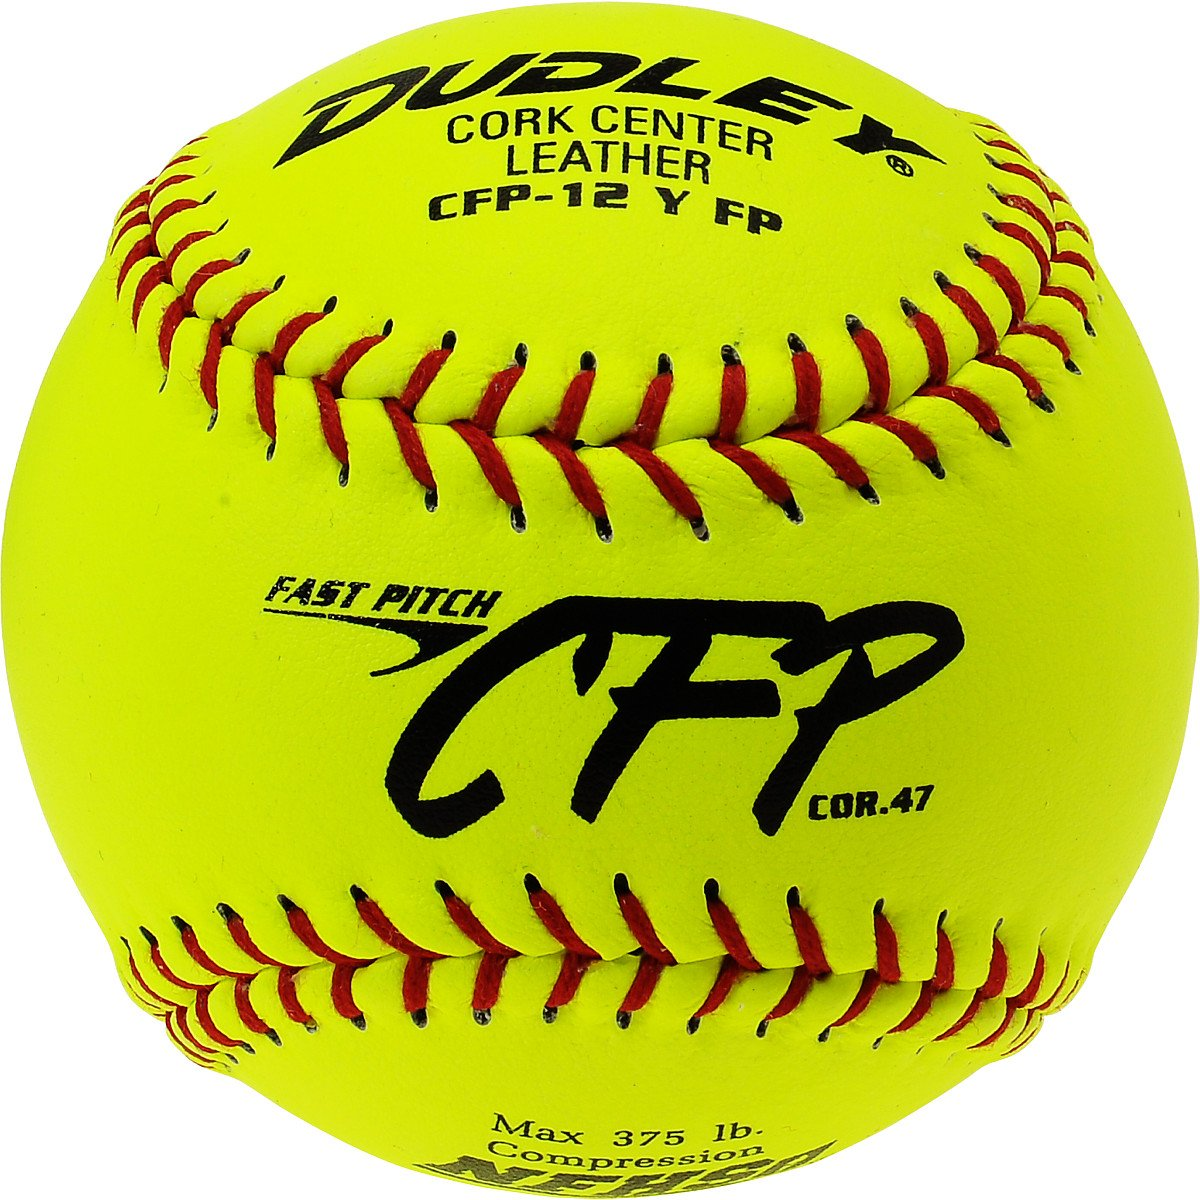 B0000APSAU Dudley CFP NFHS Leather Fastpitch Softball-12 Pack 71j6R7rvcyL._SL1200_